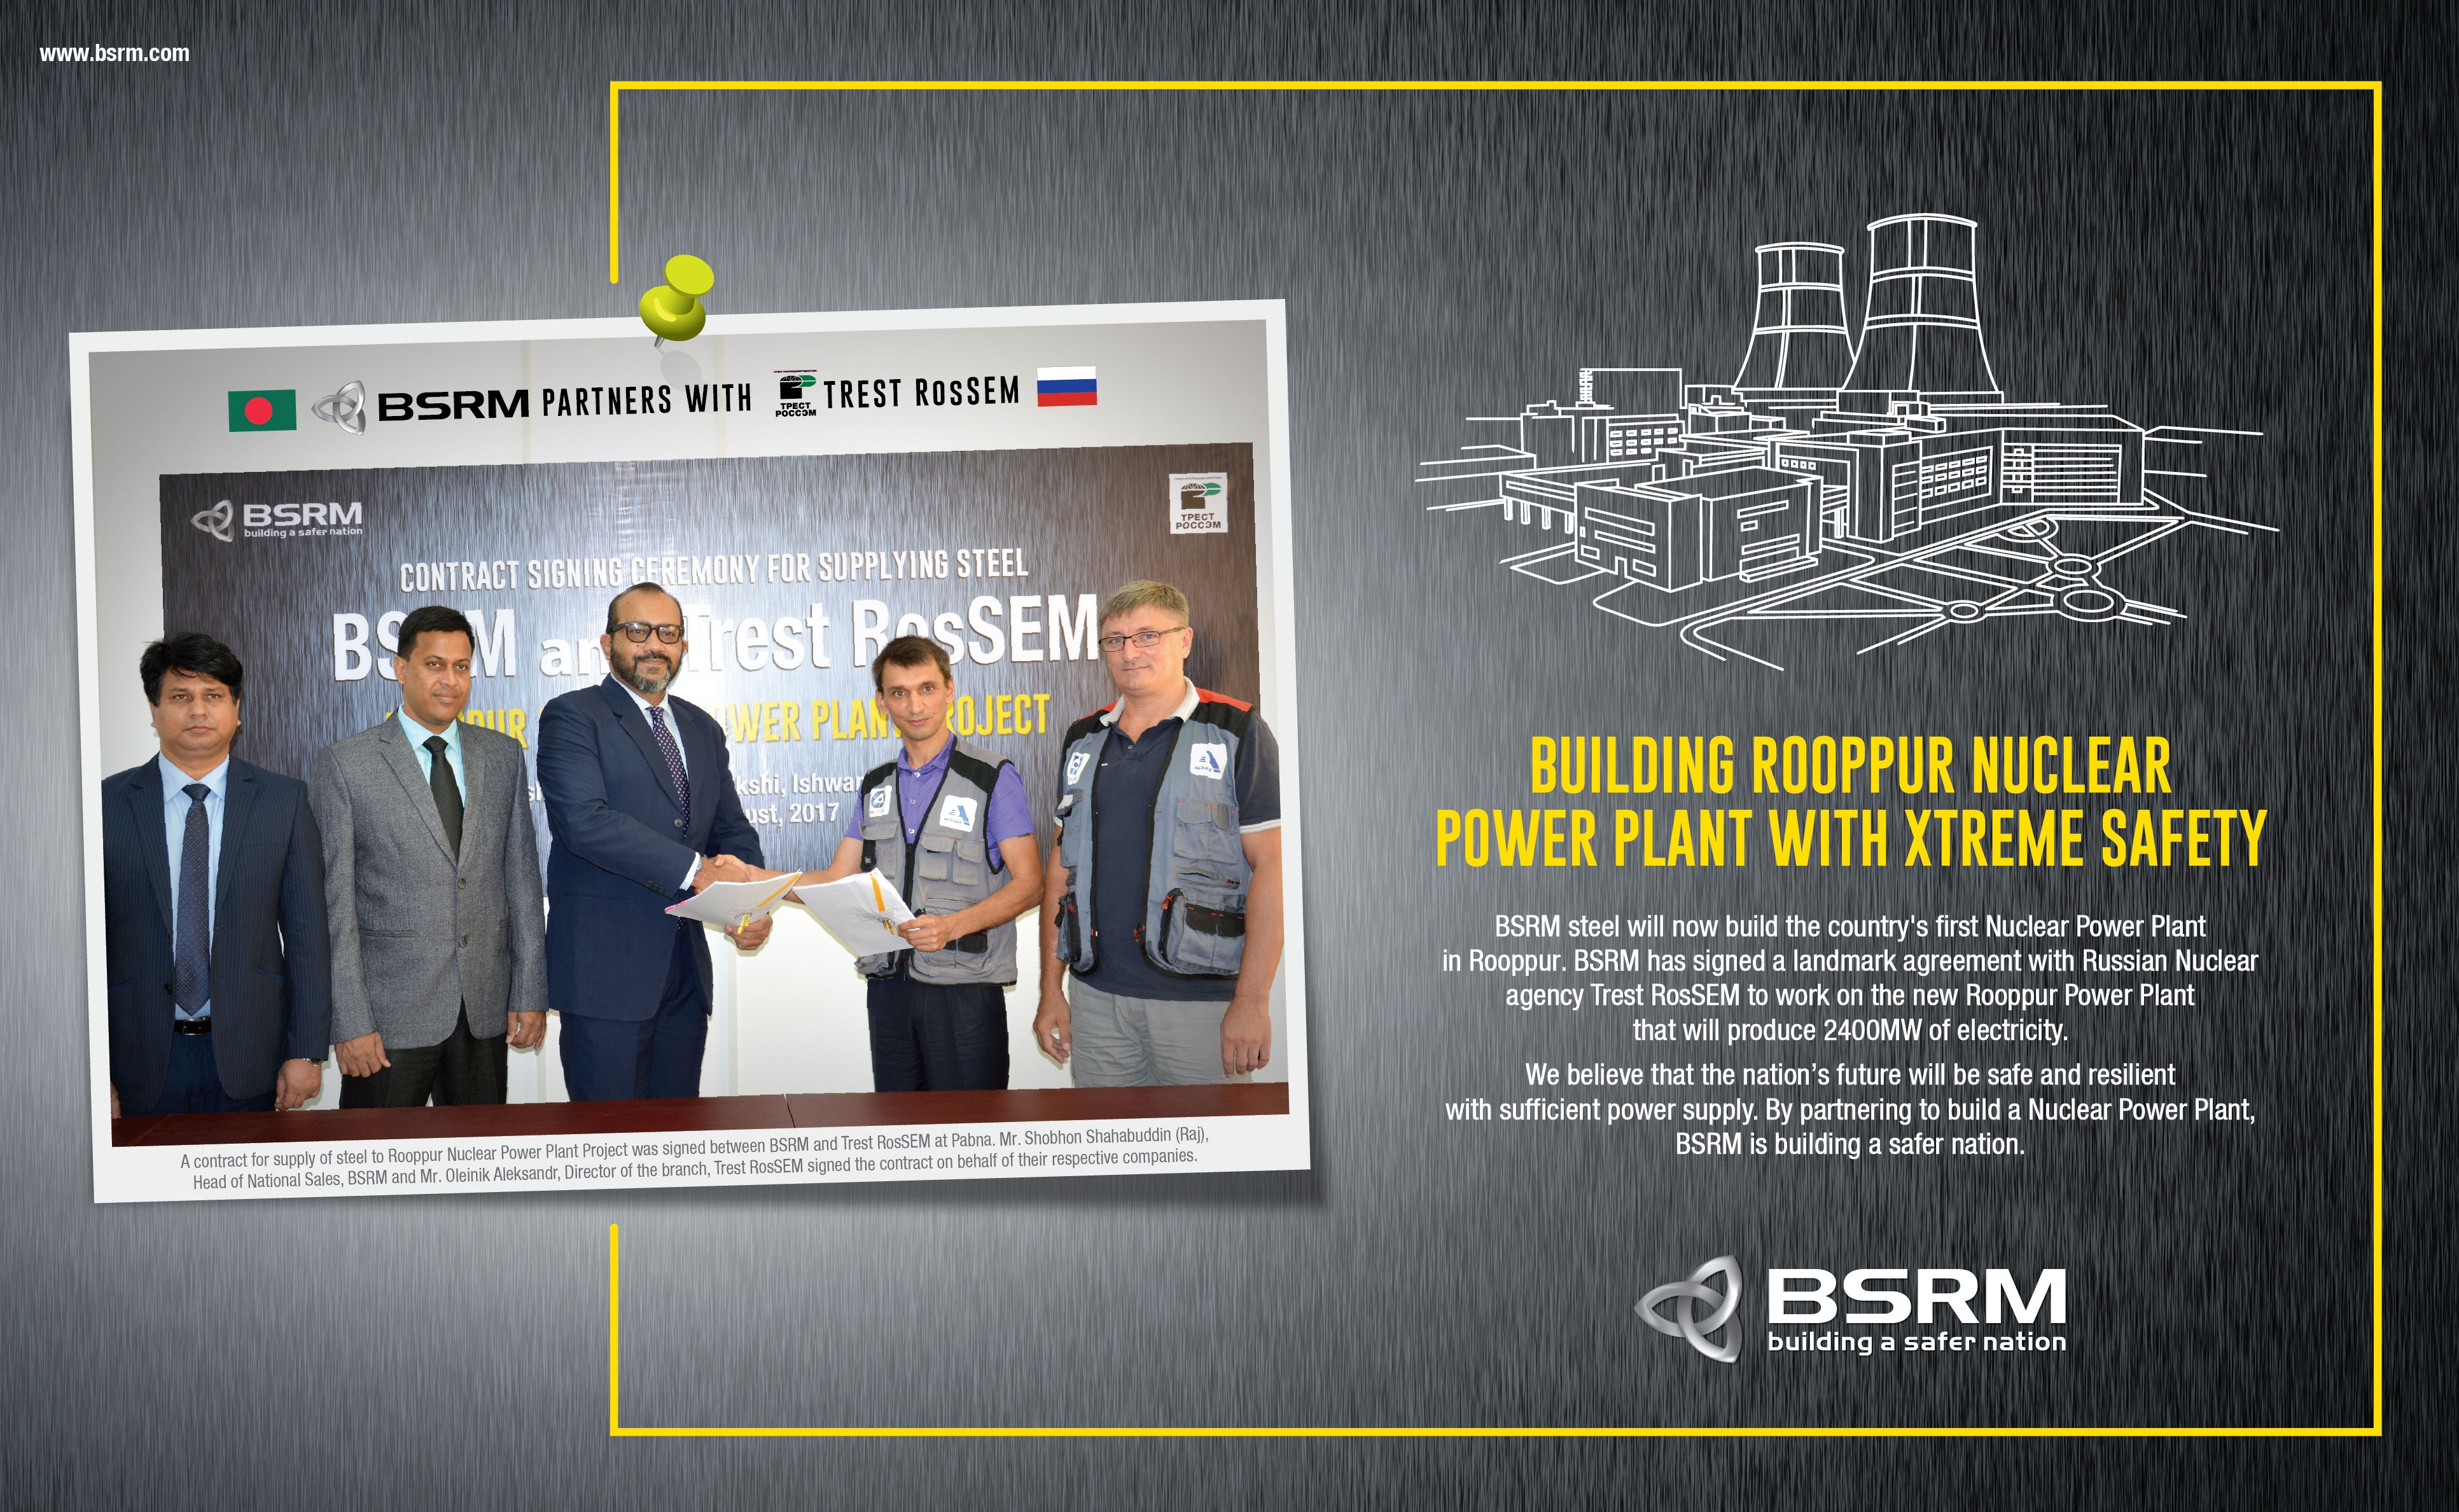 Building Rooppur Nuclear Power Plant with XTREME SAFETY - BSRM